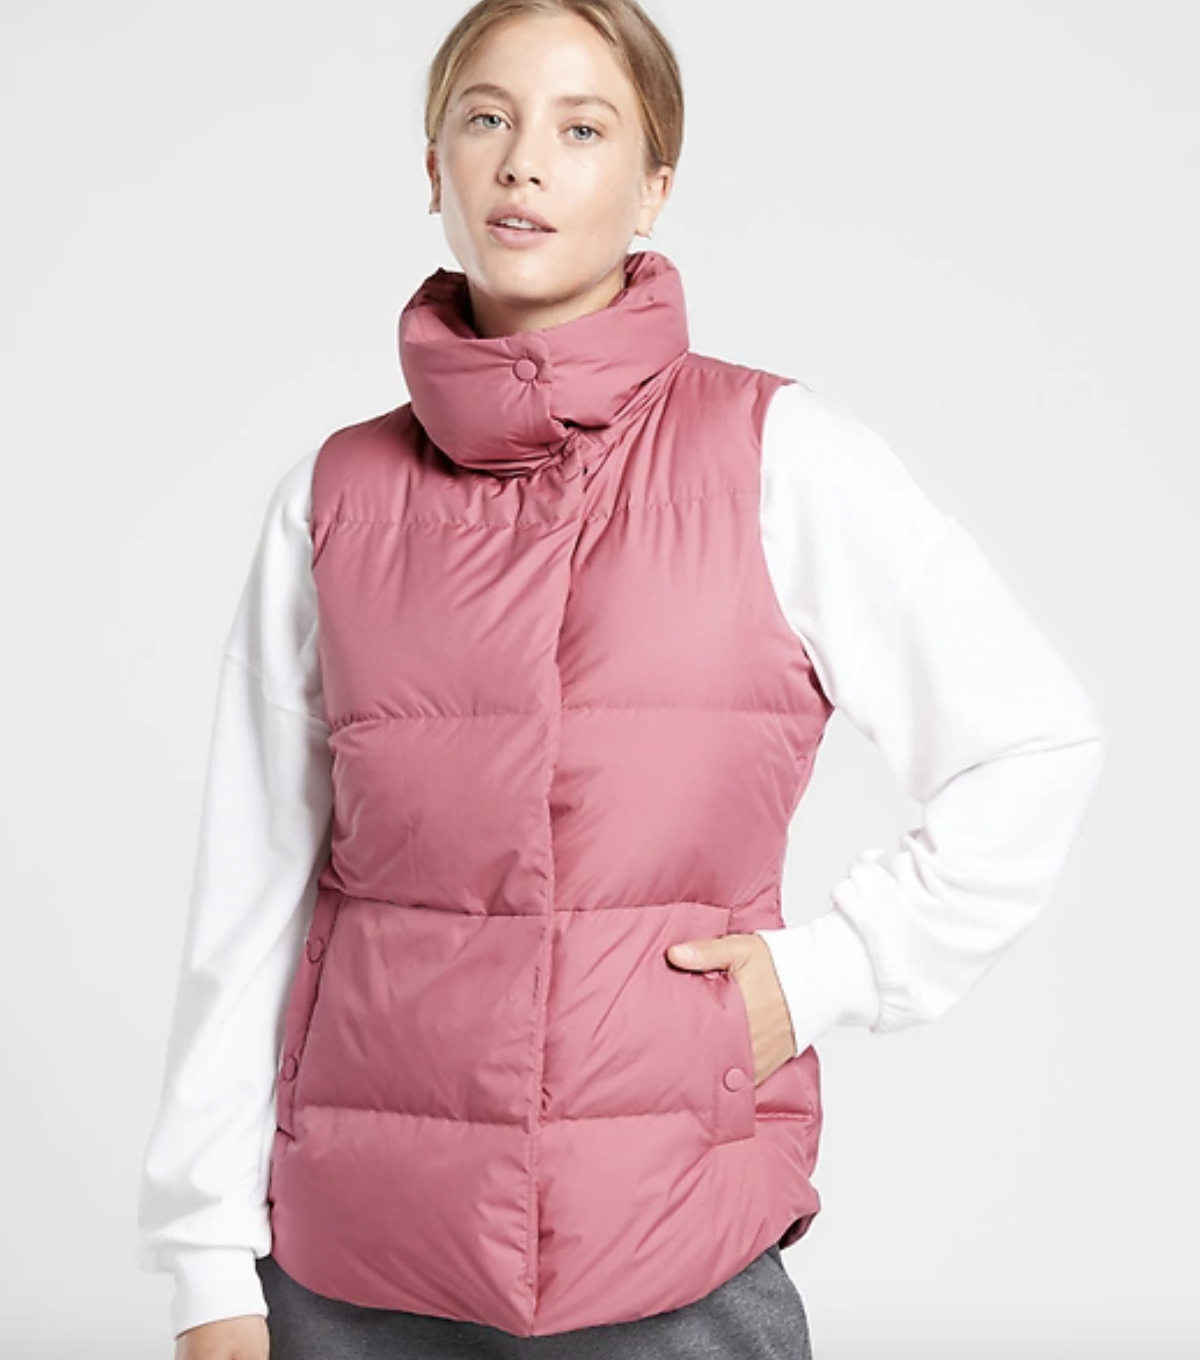 a model wears the eros pink downtown vest layered over a white sweater